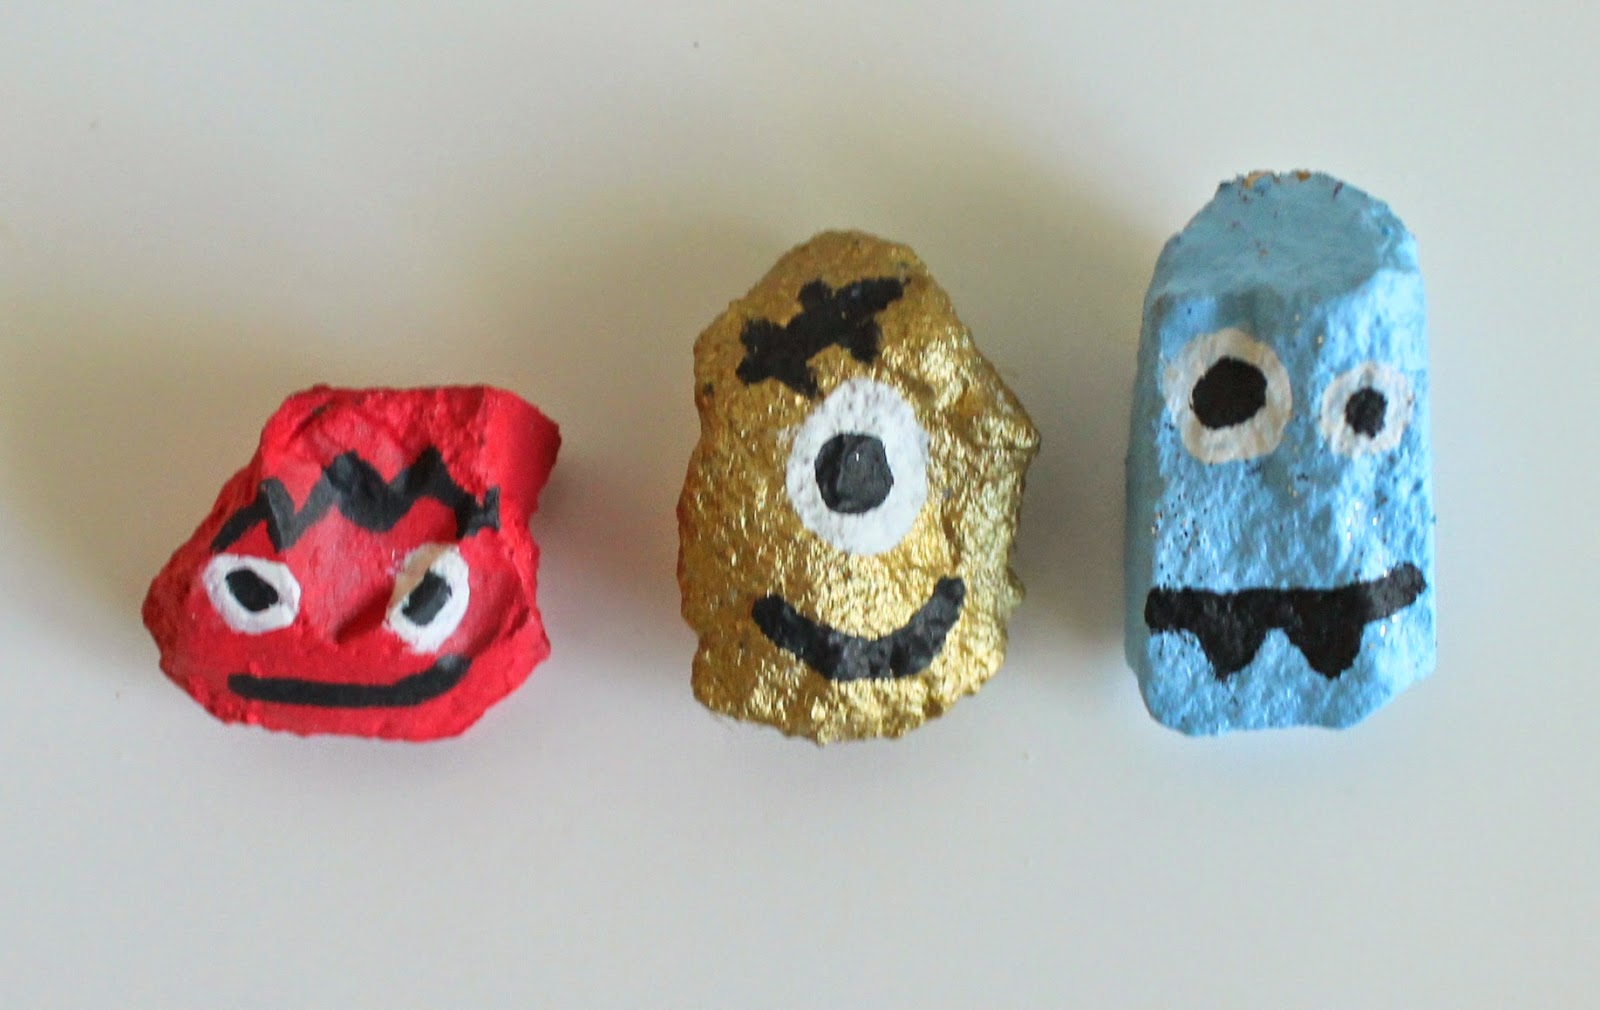 Halloween Monster Rocks | Bubbles and Gold (www.bubblesandgold).com